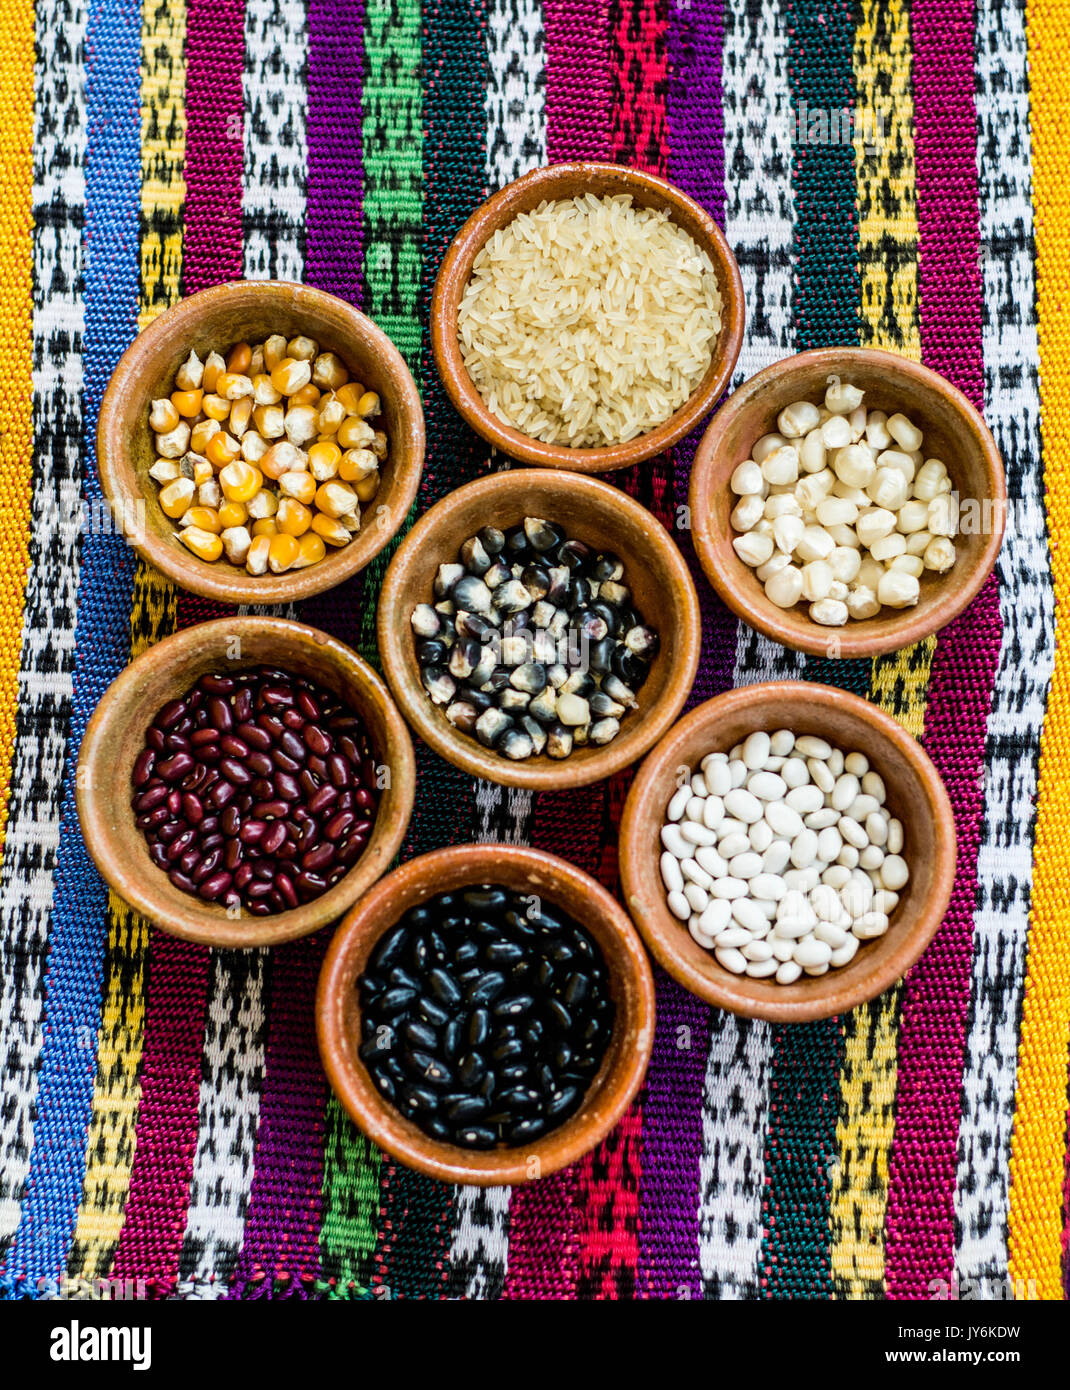 typical diferents types of corn in guatemalan food, ingedients of typical food Pepian with rice, corn and beans. - Stock Image